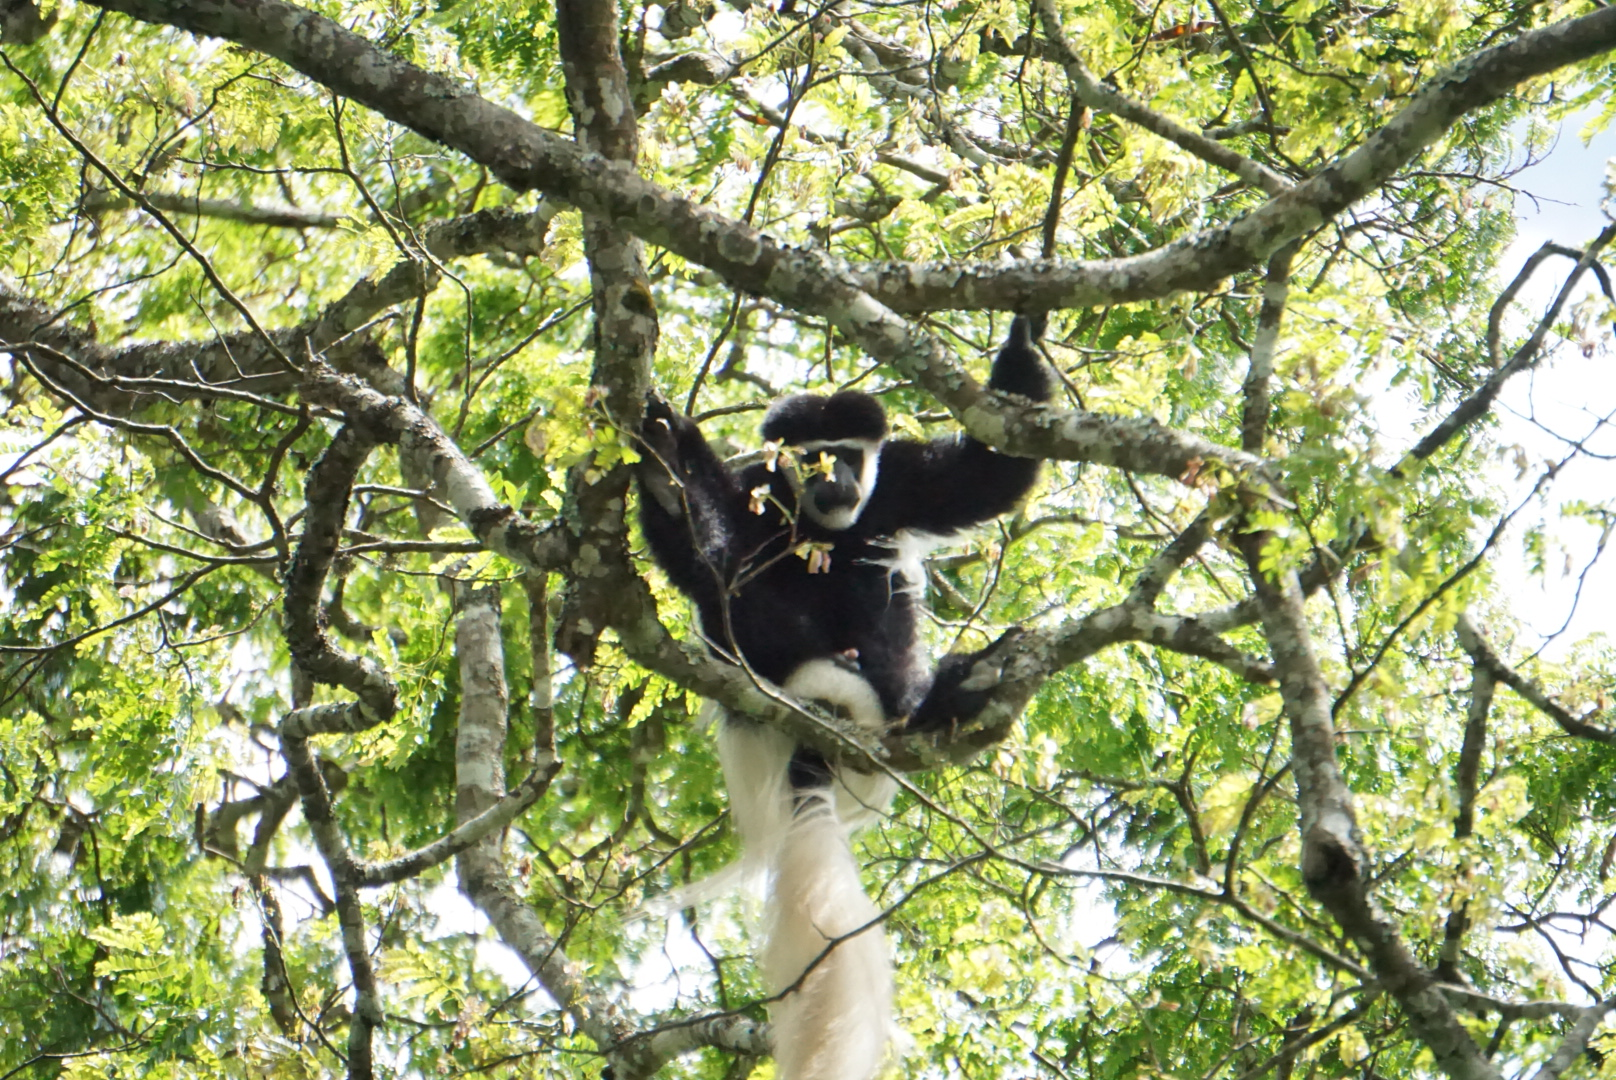 Black-and-white colobus monkeys are native to Africa and are found in Tanzania within the boundaries of Arusha National Park and Kilimanjaro National Park. We spotted them playing in the trees on ur way down the mountain.